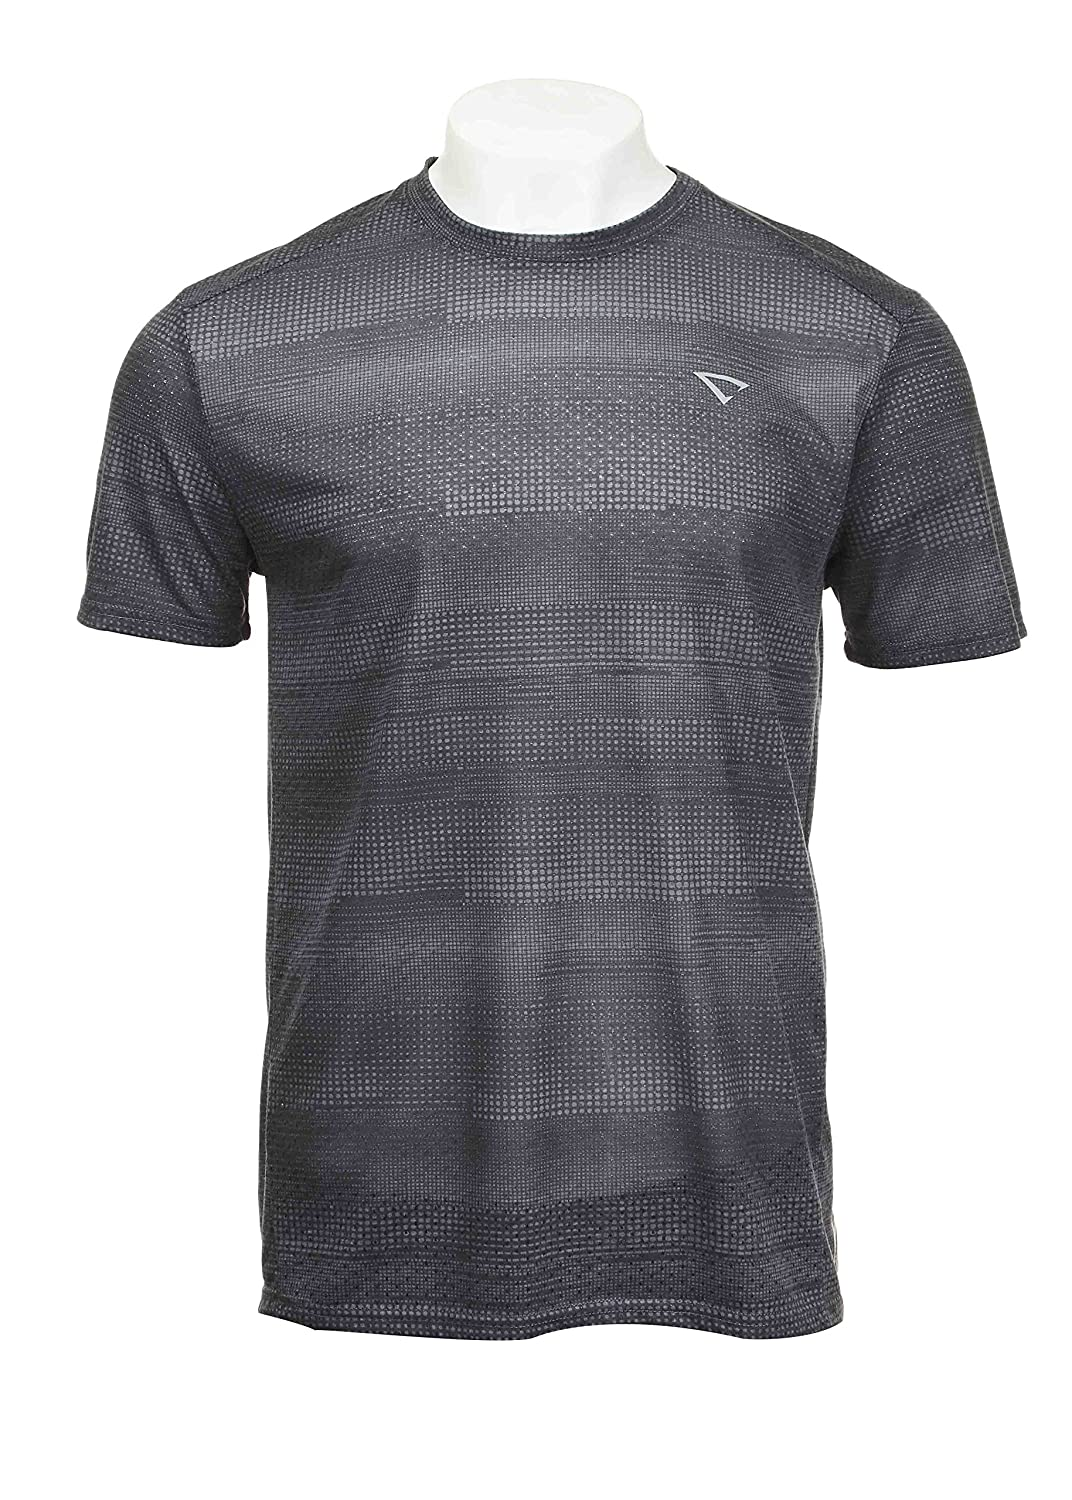 04806e2b Made for Moving: Whether you're running, playing sports, or lifting, feel  free to move and perform at your best with this short sleeves shirt that  allows a ...